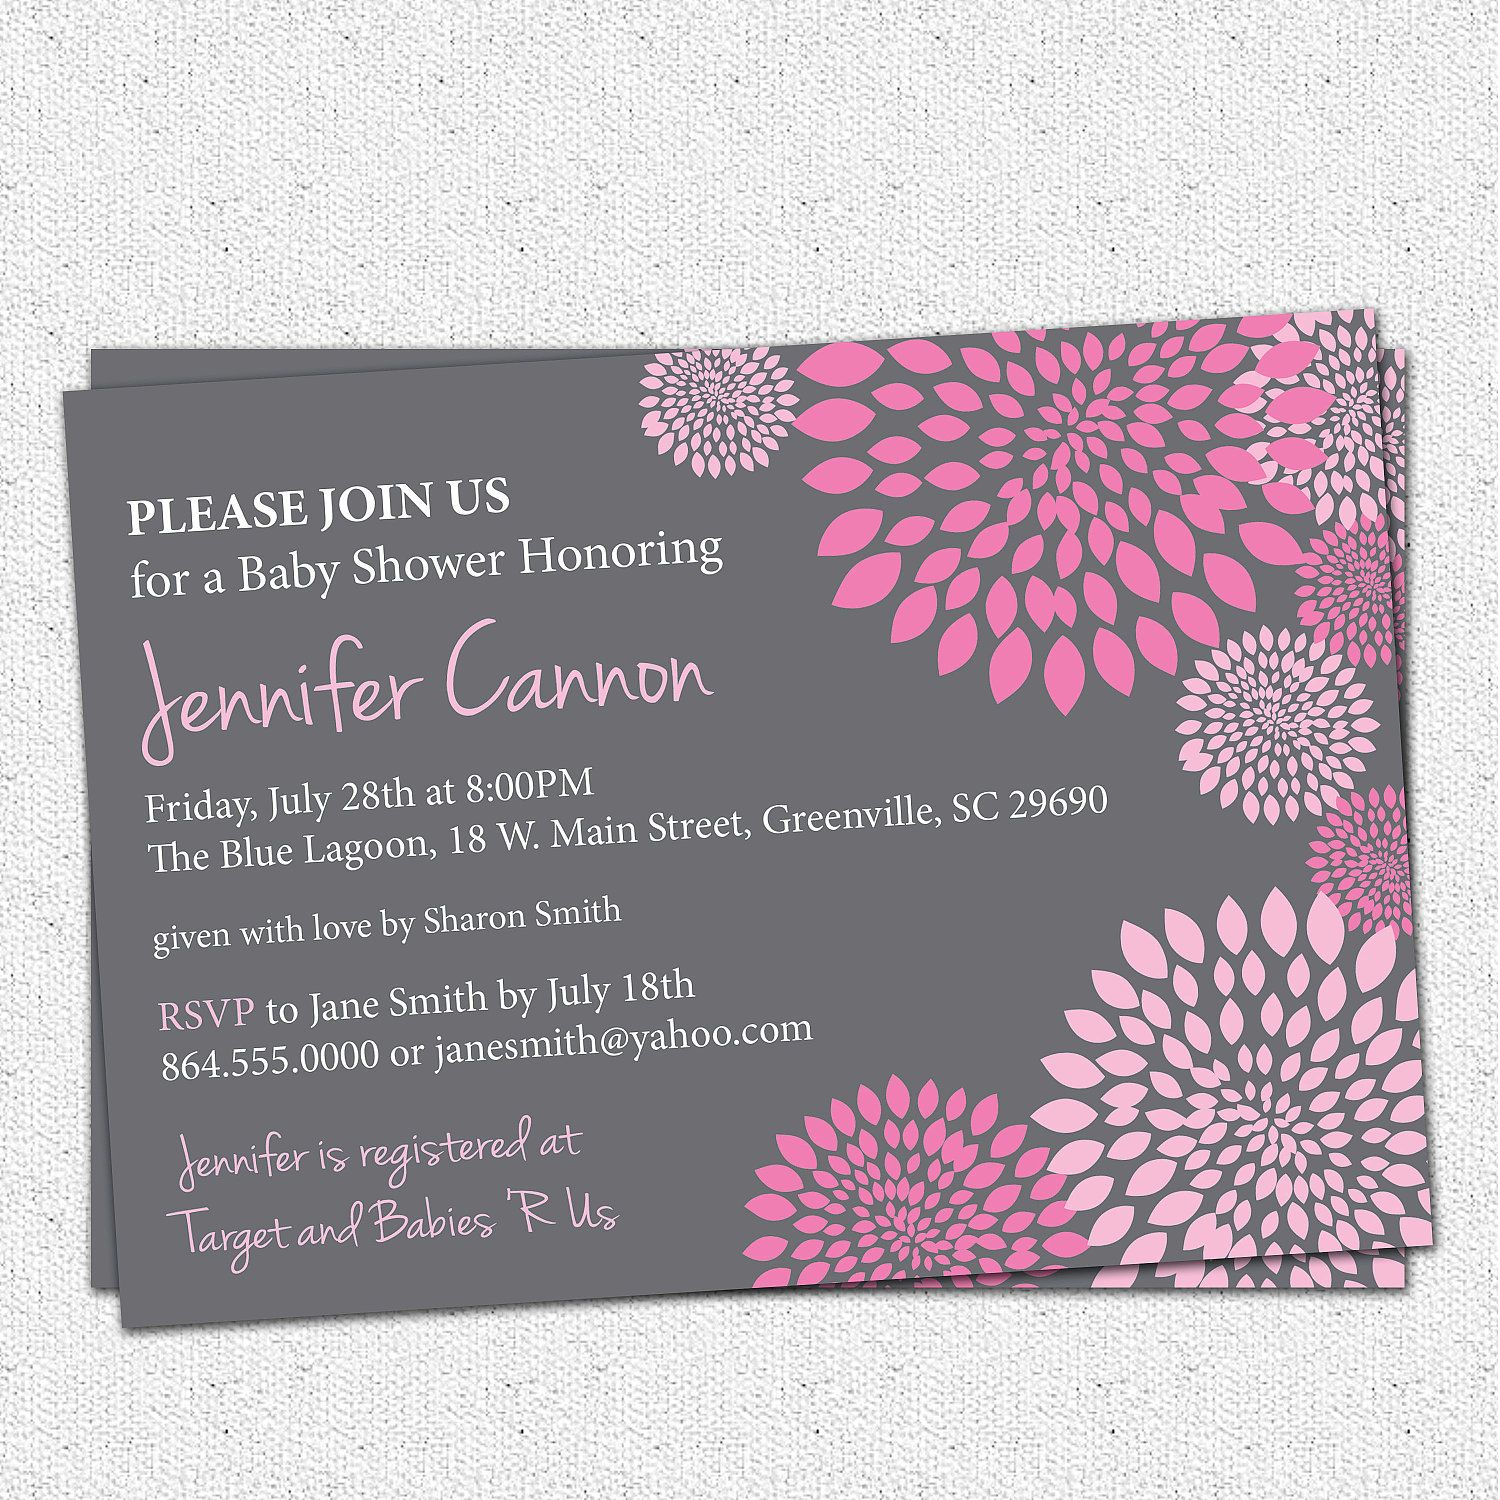 Baby Shower Invitation Printable Girl Hot and Pale Pink and Charcoal ...